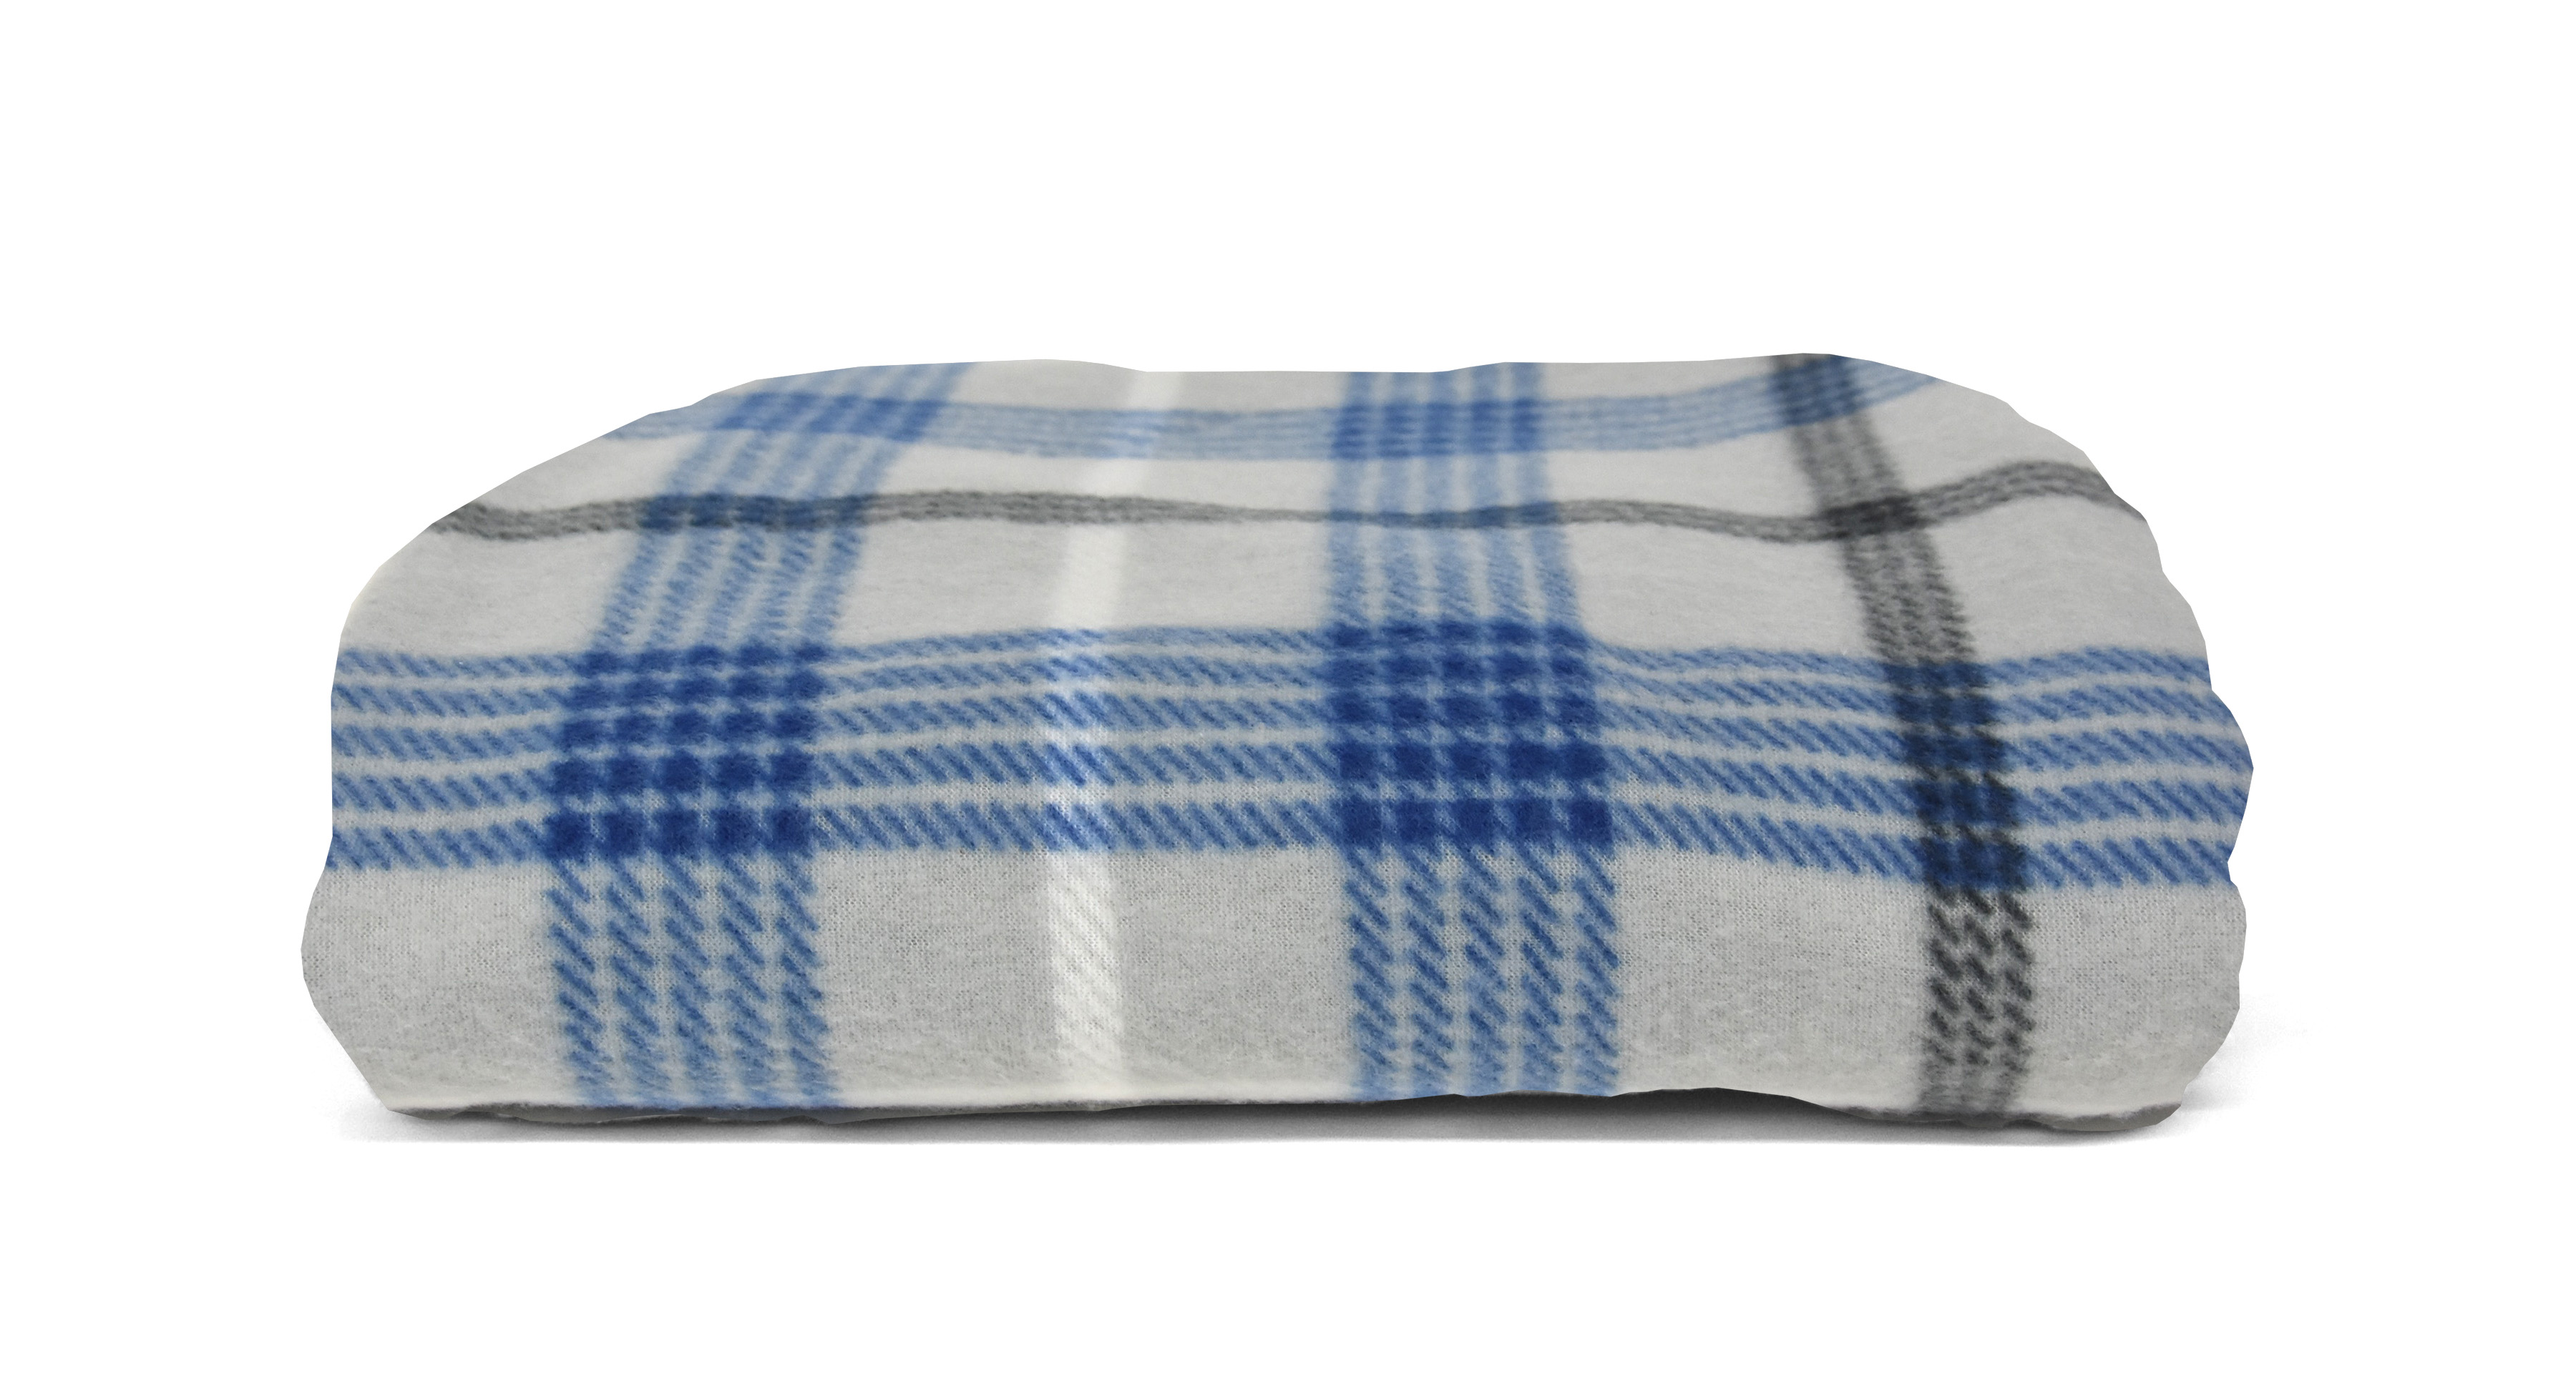 Mainstays Kids Fleece Plush Throw Blanket ONLY $2.50 at Walmart